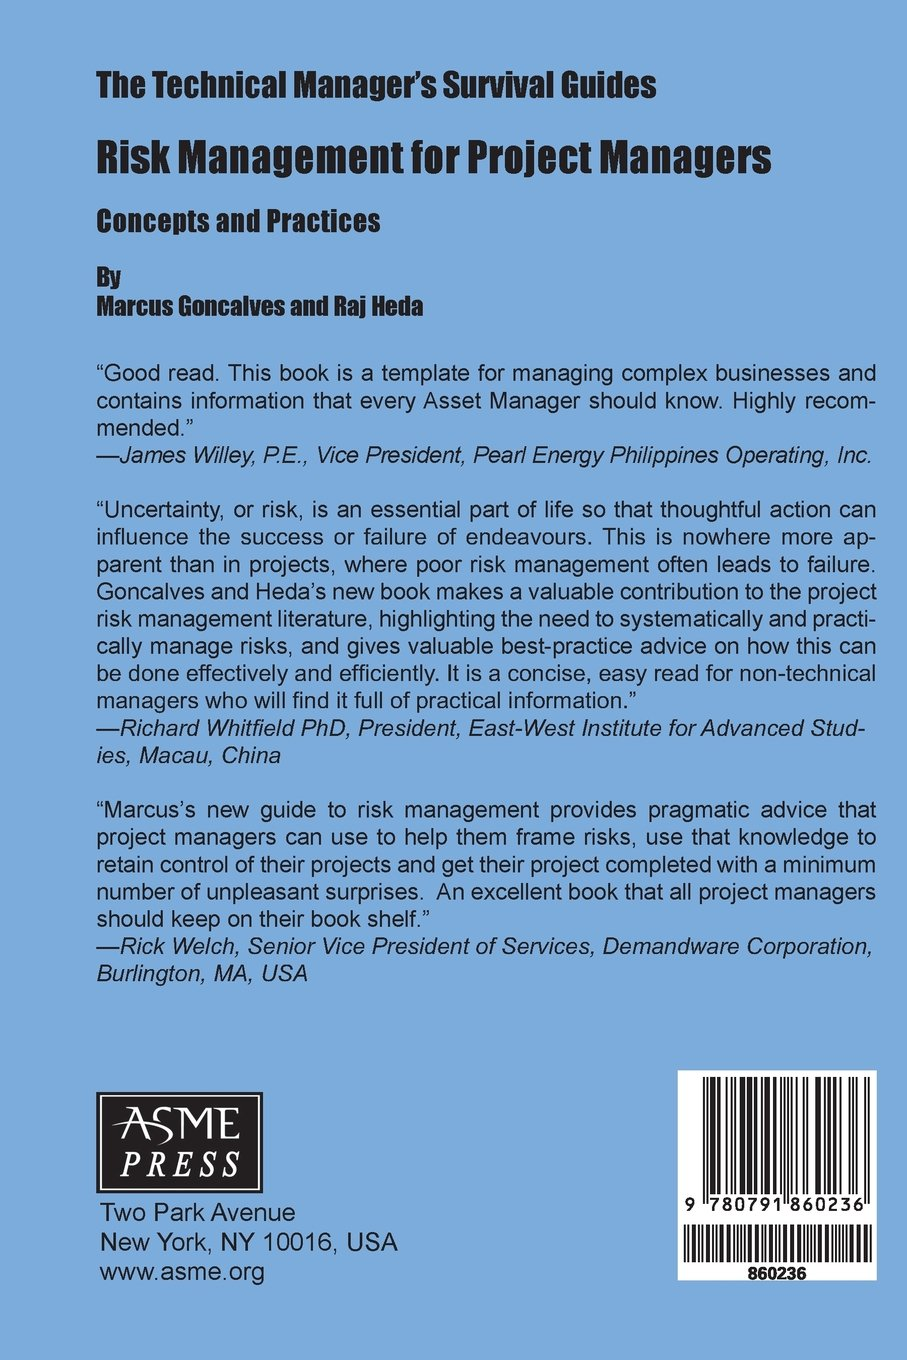 Buy Risk Management for Project Managers: Concepts and Practices